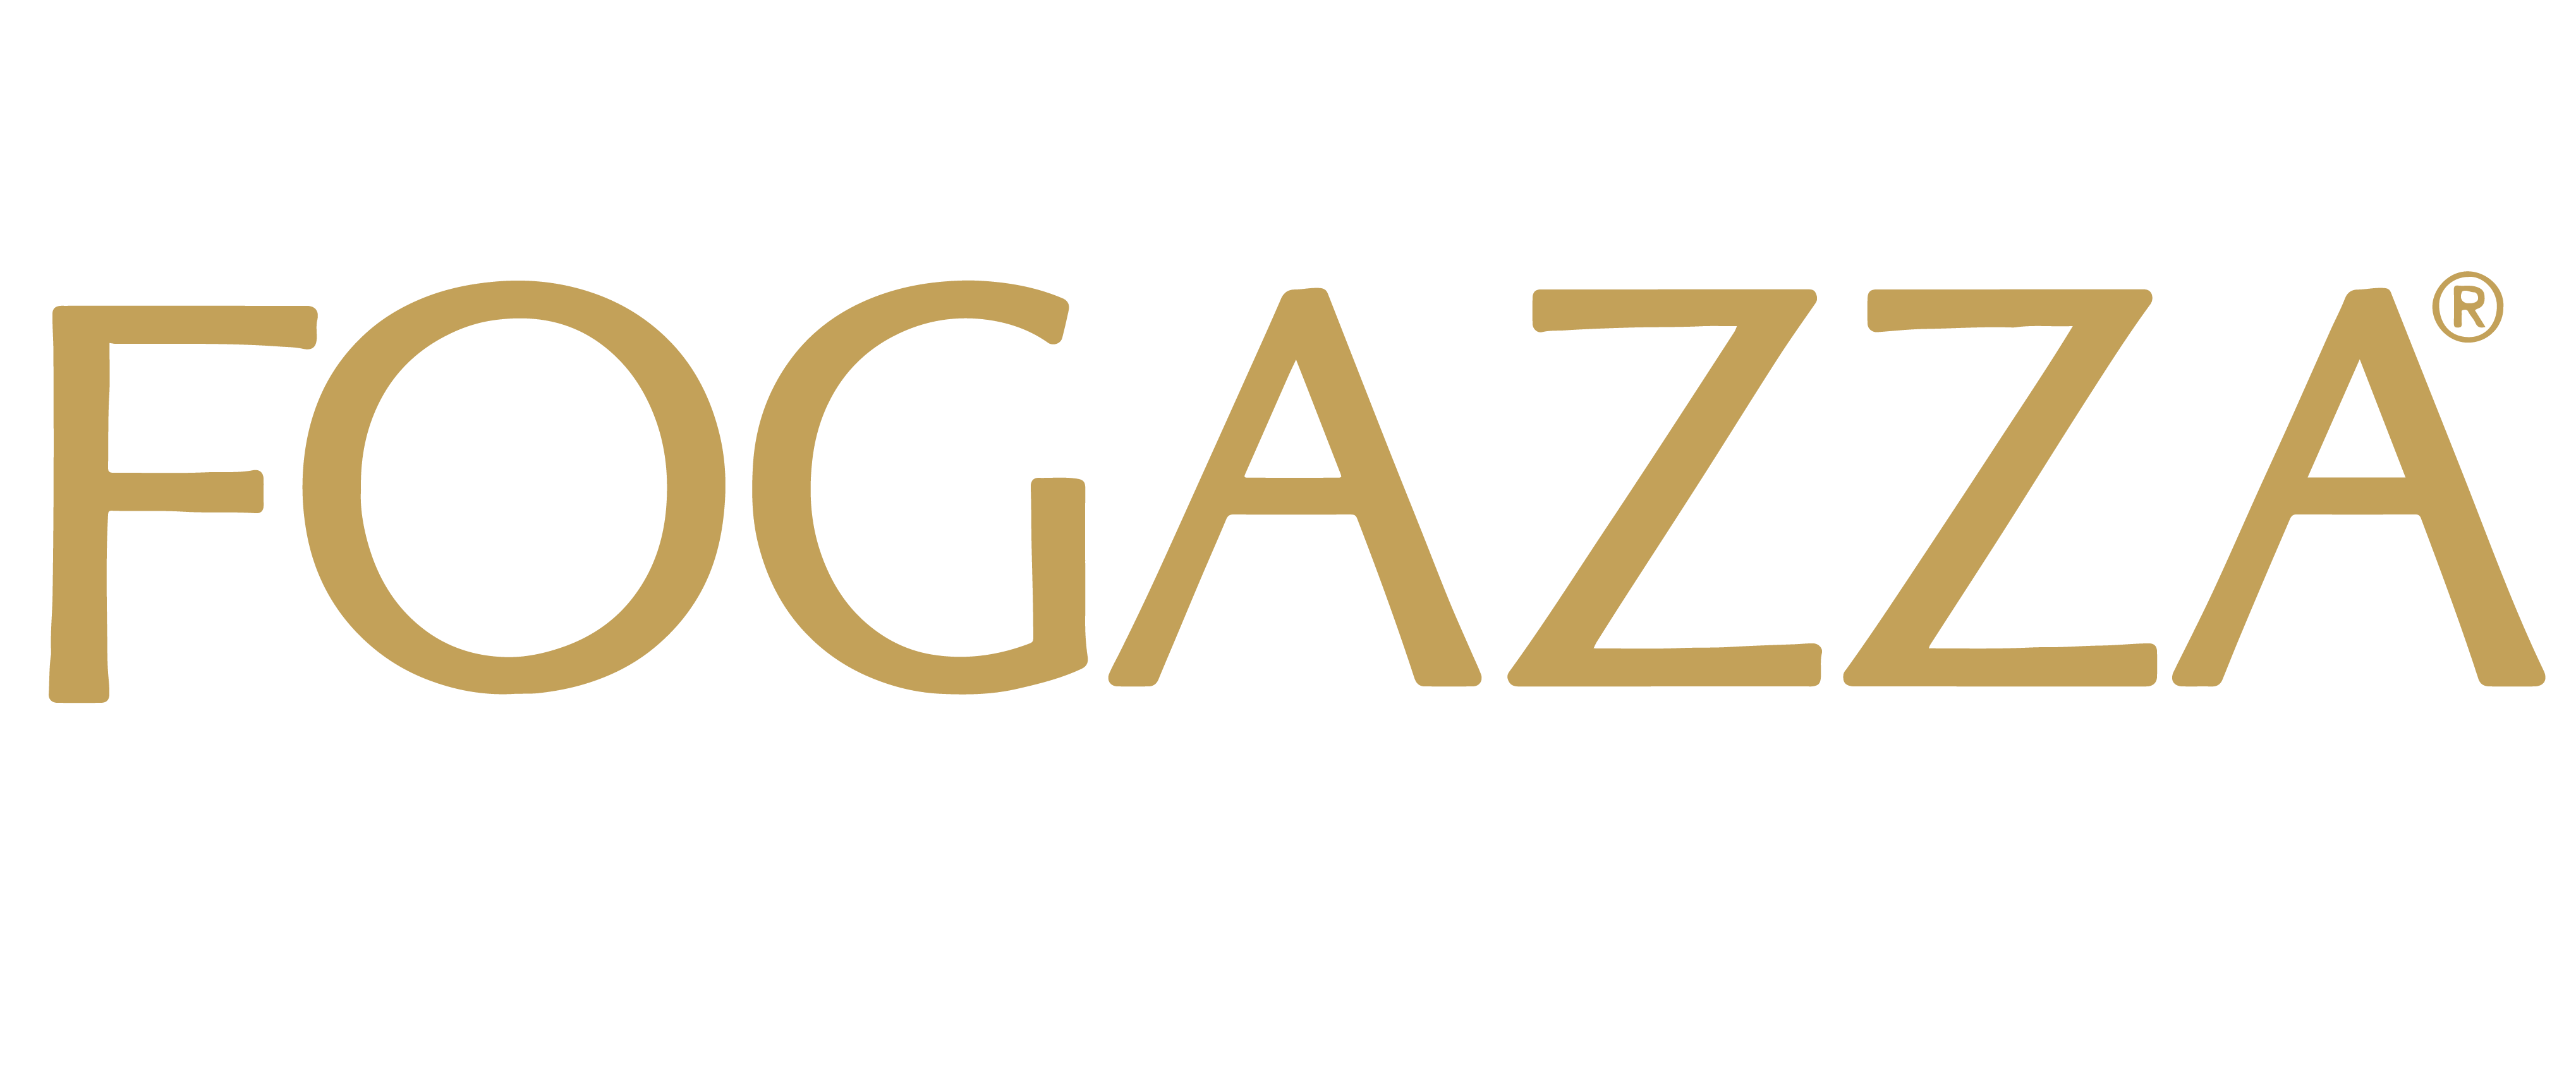 Fogazza Cosmetics – Europe Store